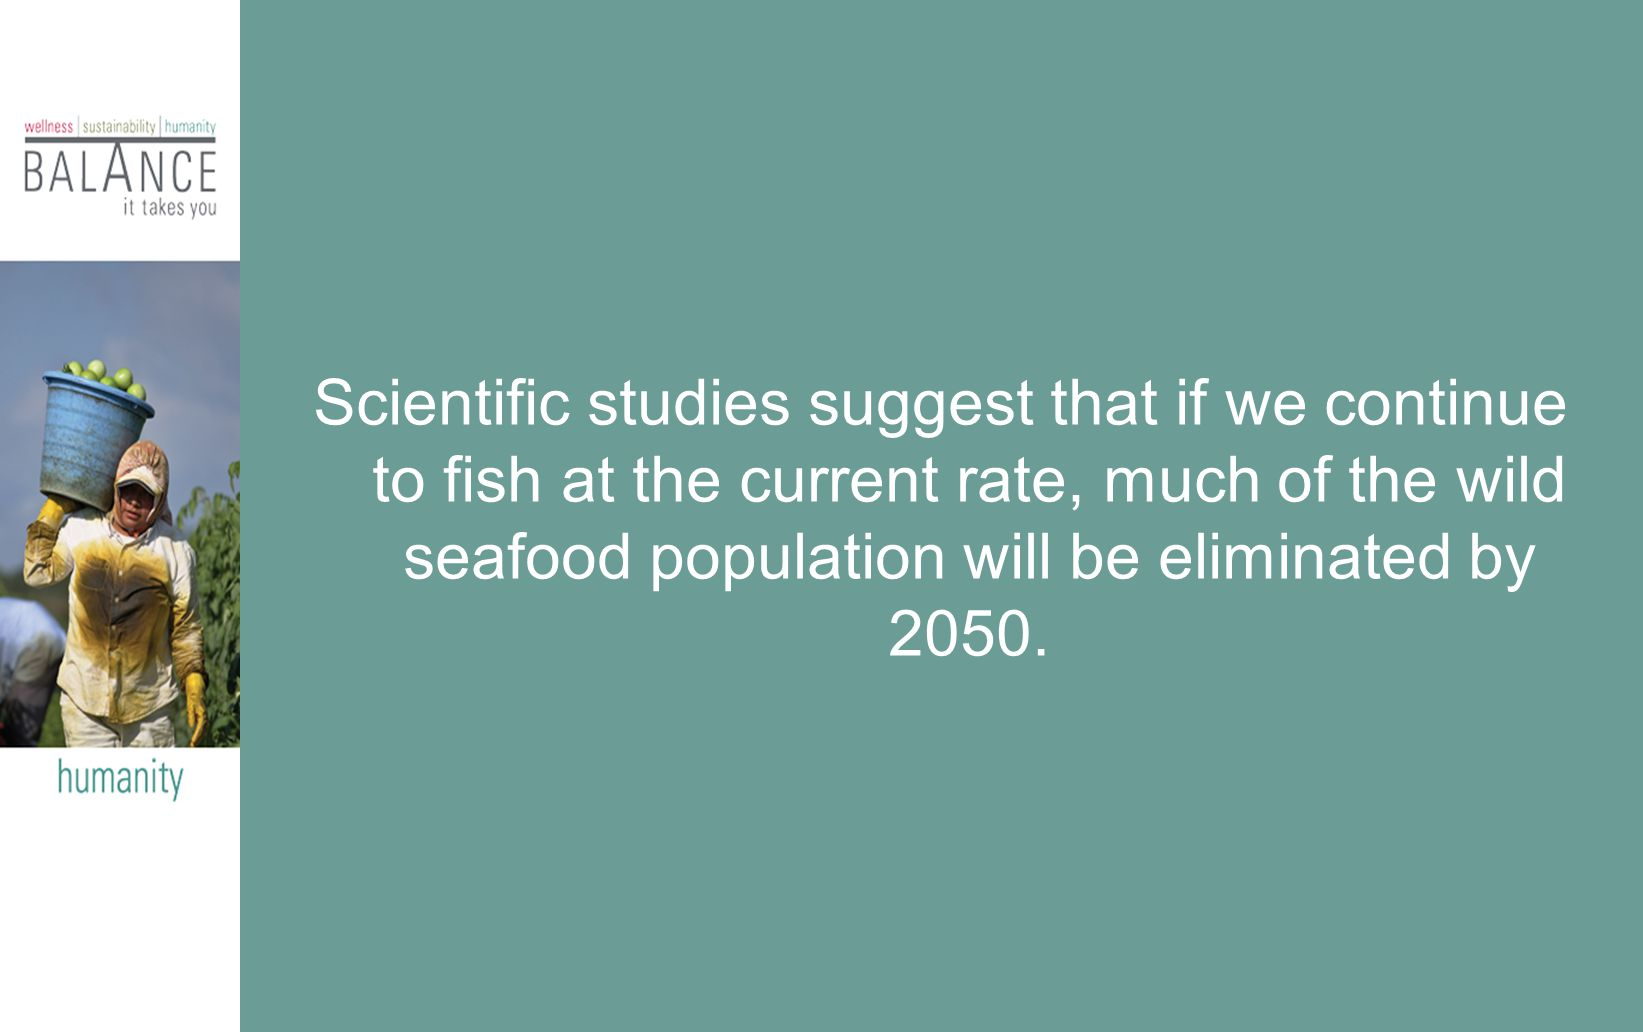 Scientific studies suggest that if we continue to fish at the current rate, much of the wild seafood population will be eliminated by 2050.